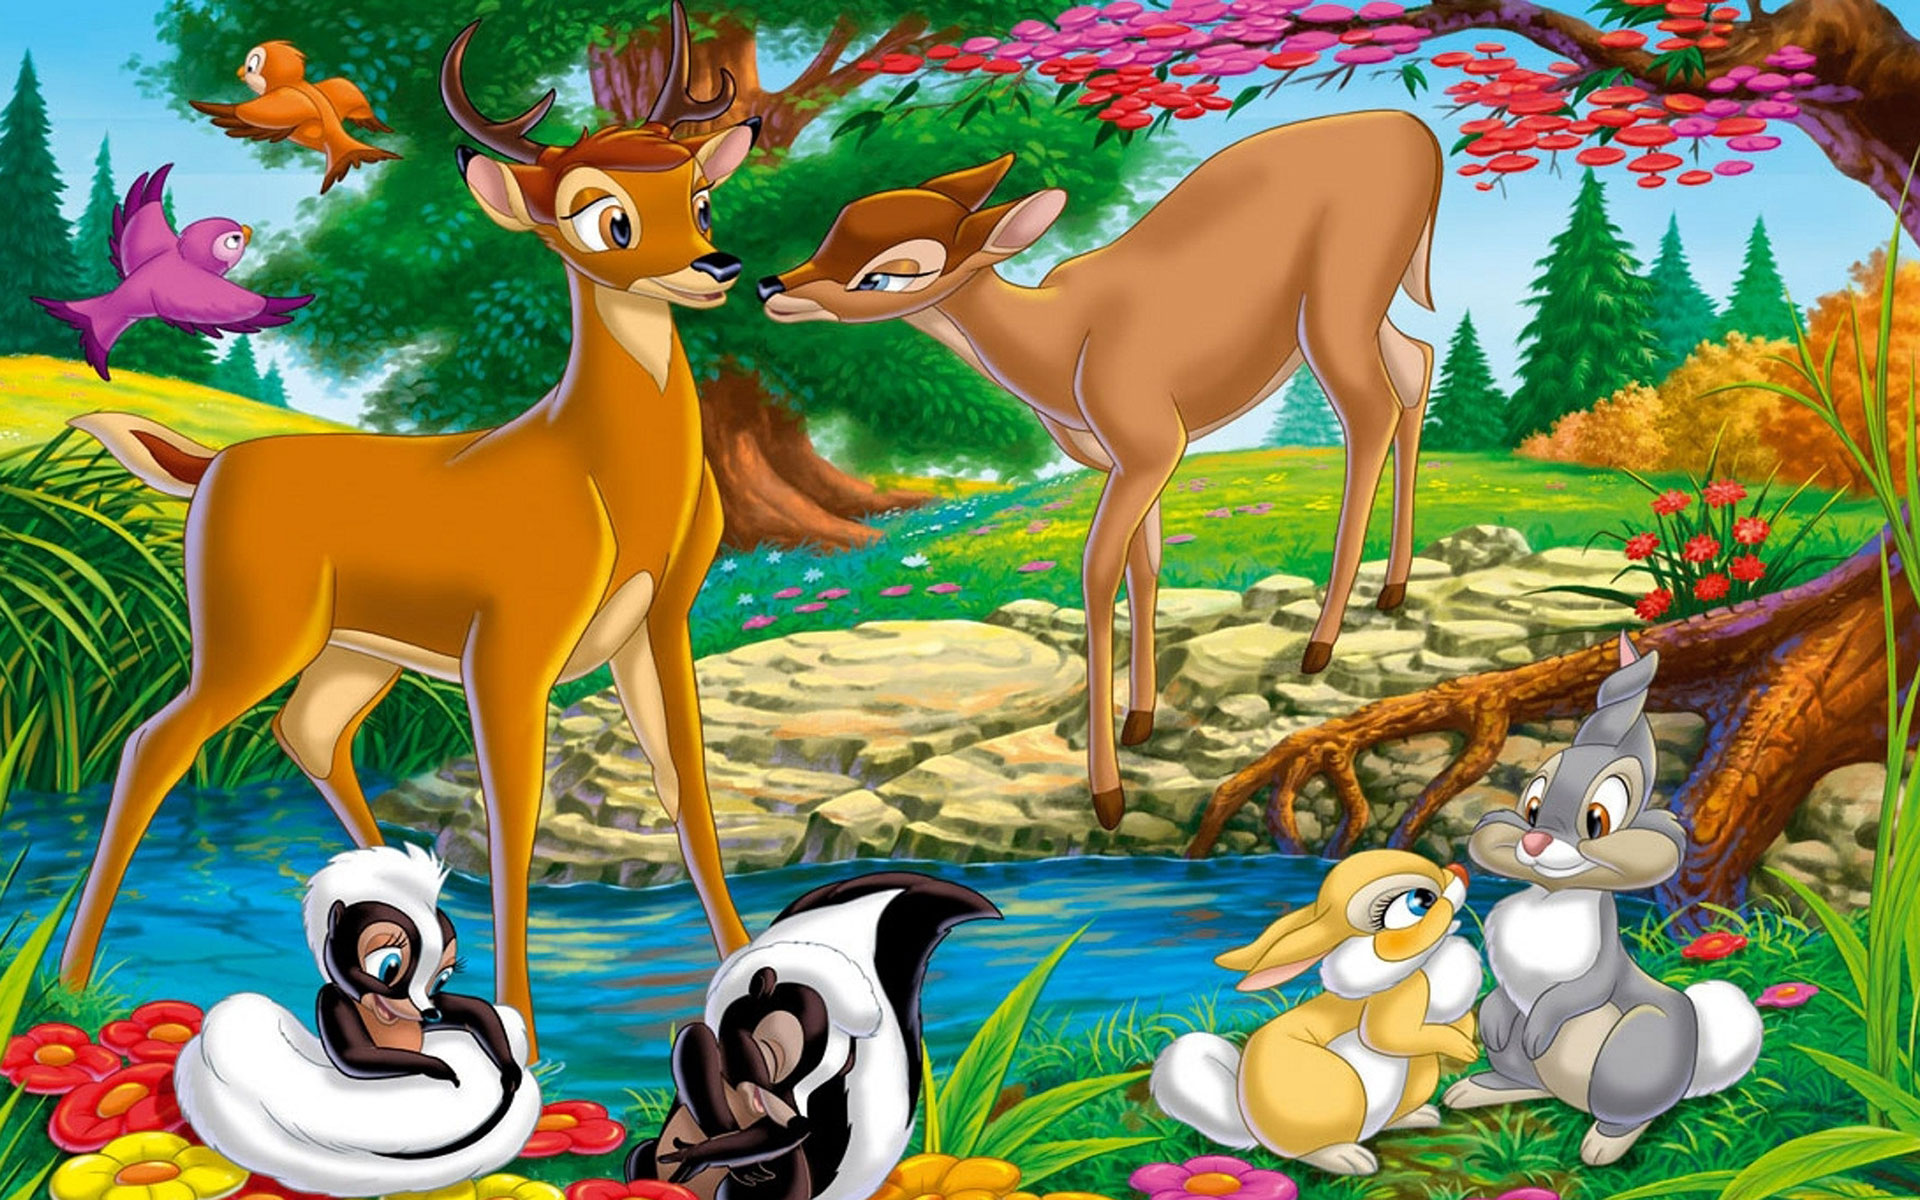 wallpaper bambi couples cute toonswallpapers 1920x1200